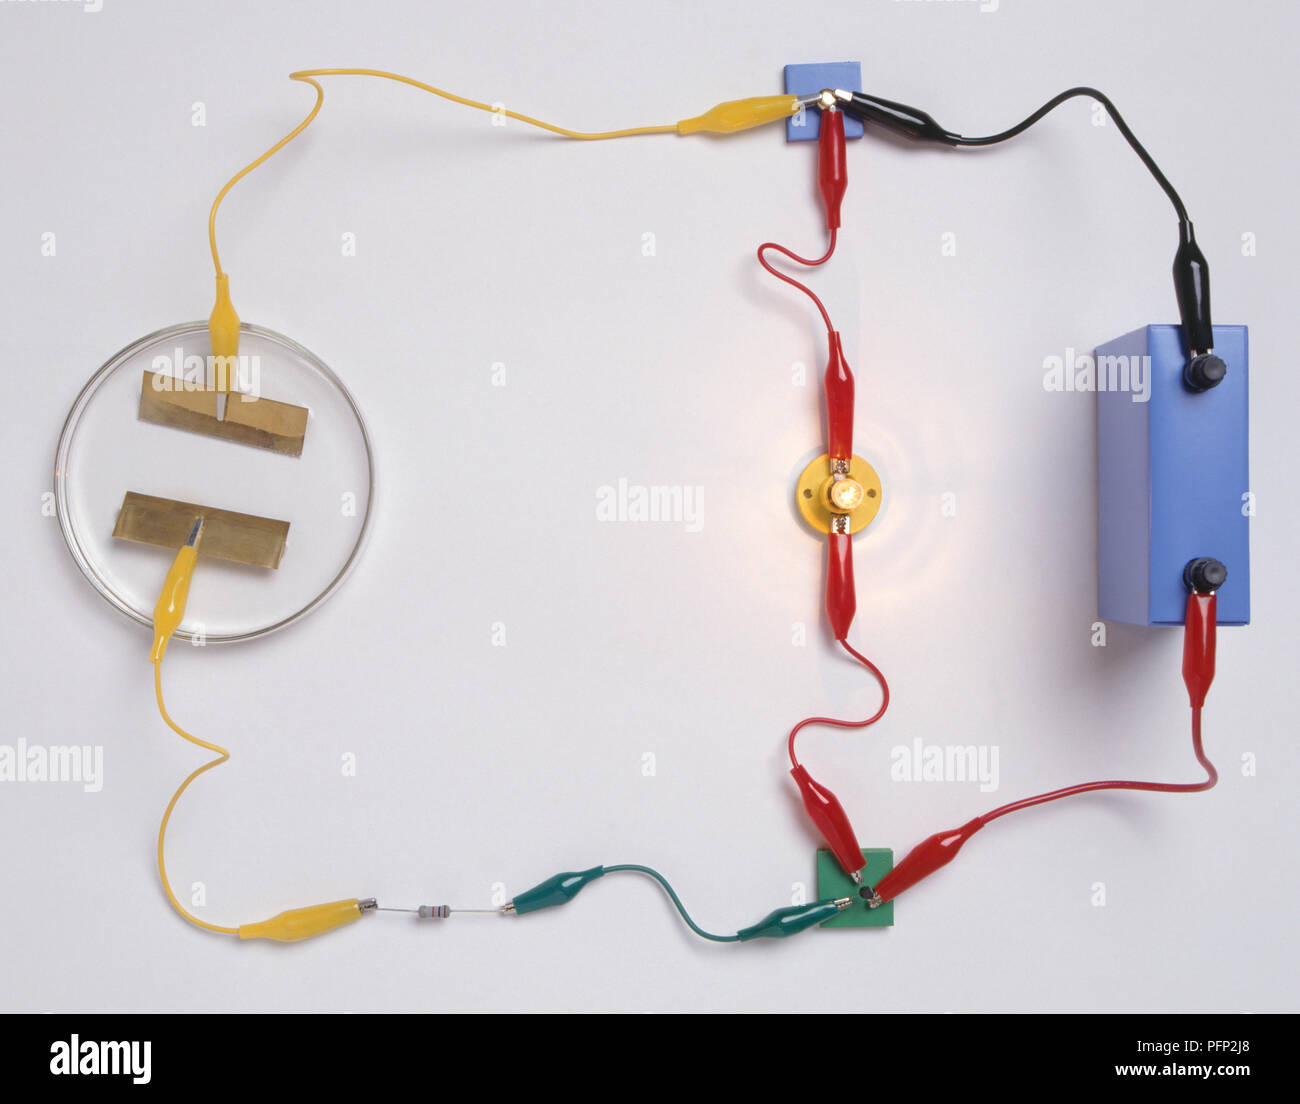 Battery Light Bulb Circuit Stock Photos Parallel And Series With Lightbulbs A Simple Electronic Used To Detect The Presence Of Water Consisting